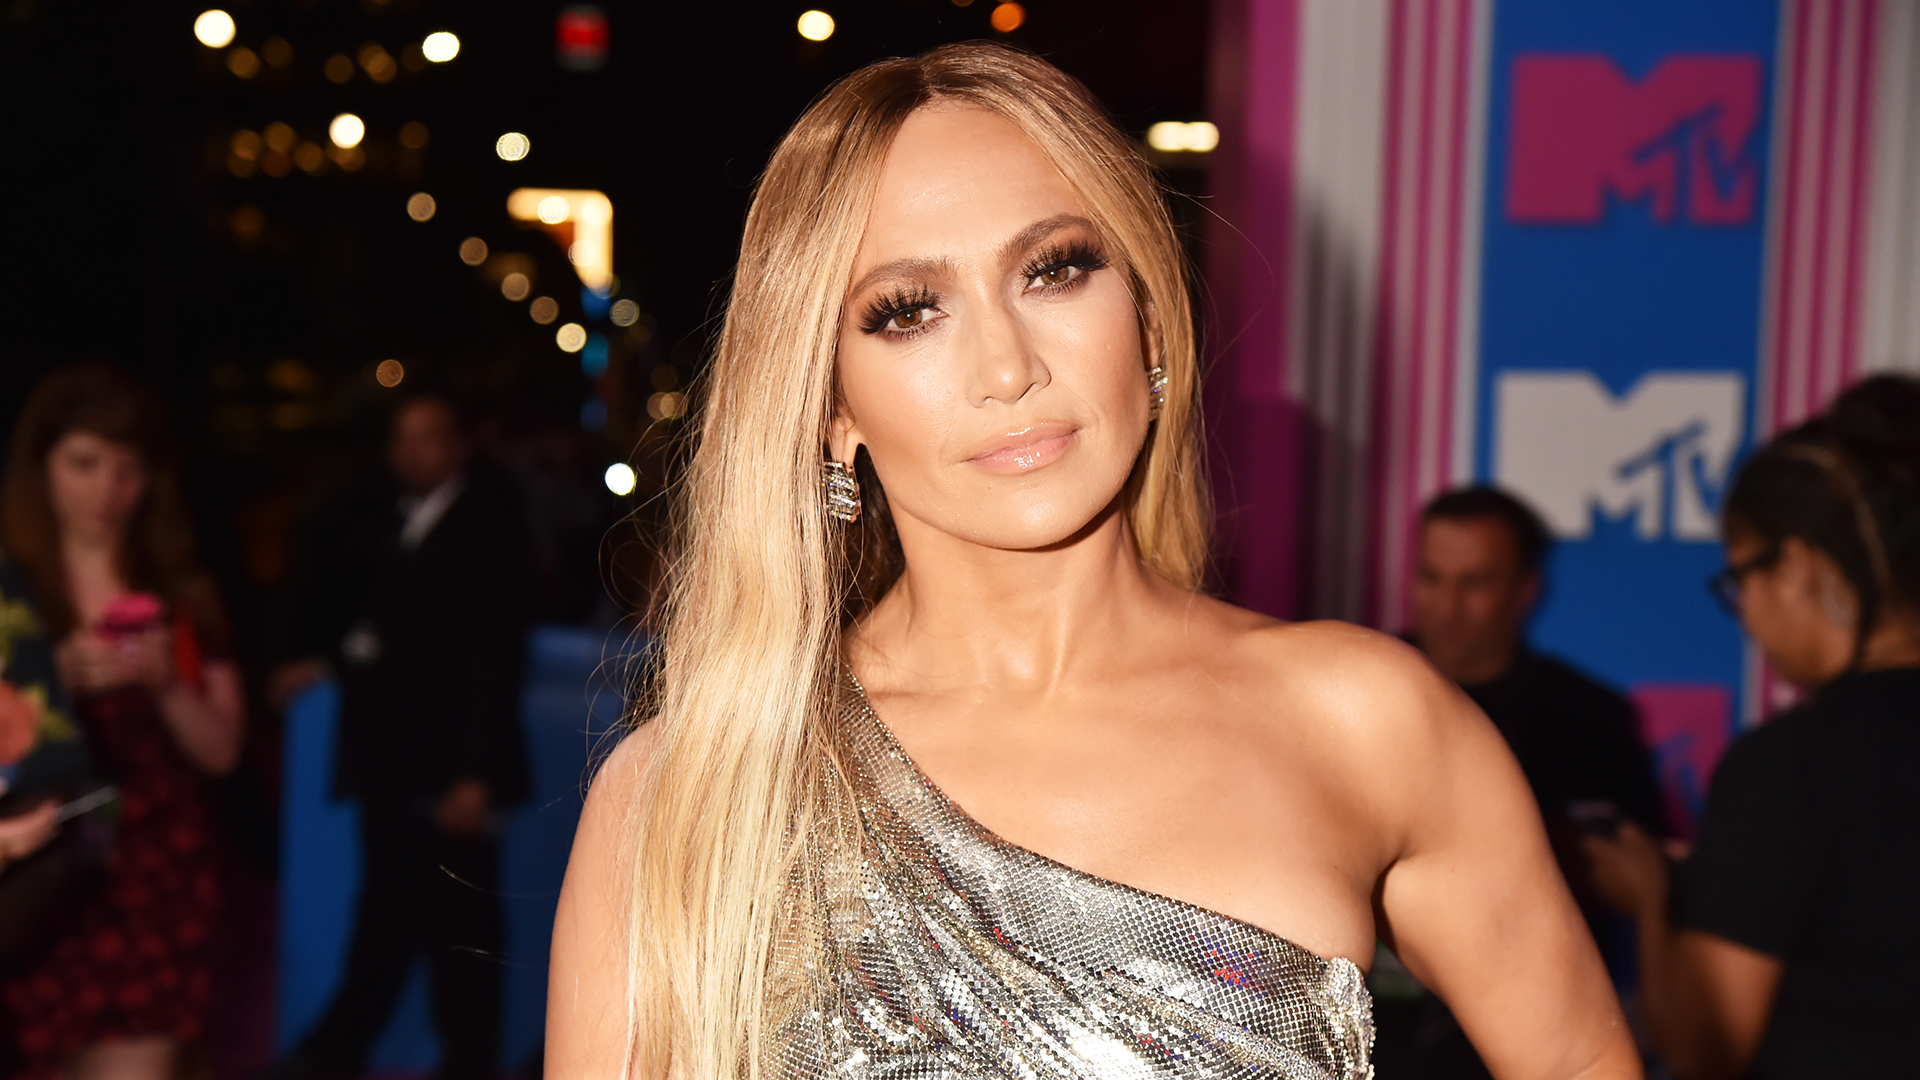 A Jennifer Lopez Skin-Care Line Is Coming, Because Dreams Really Do Come True